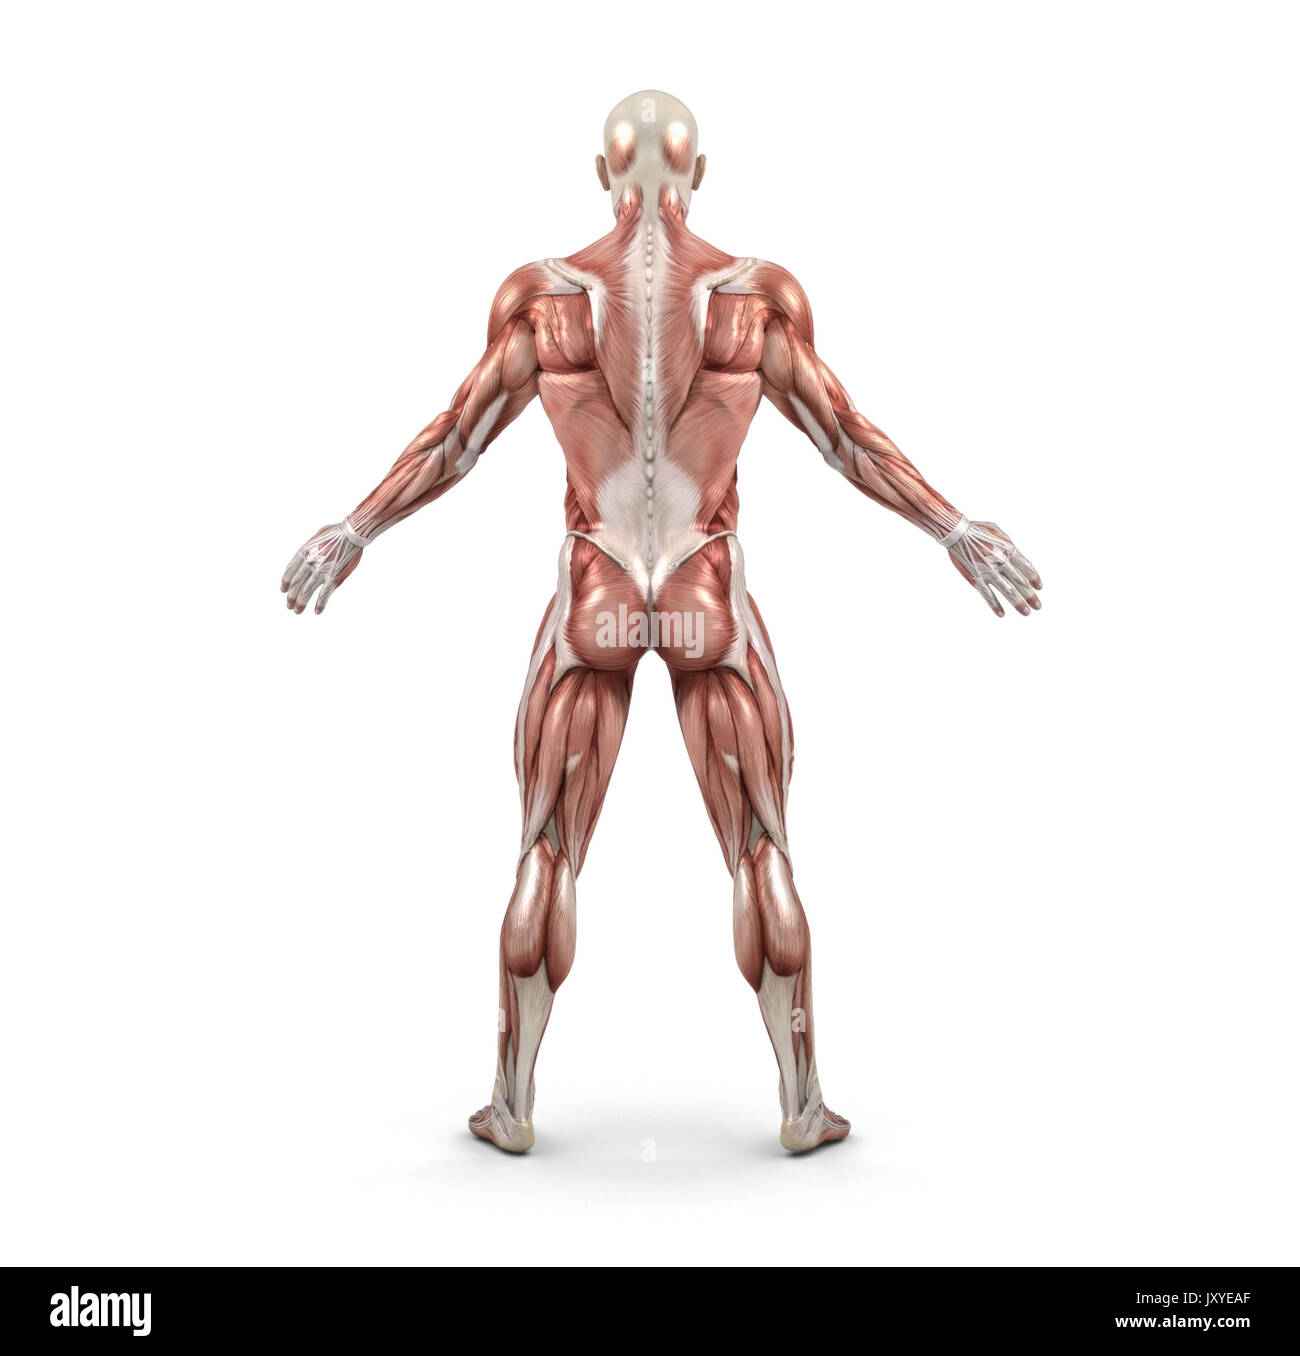 Rear View Of The Male Muscular System This Is A 3d Render Stock